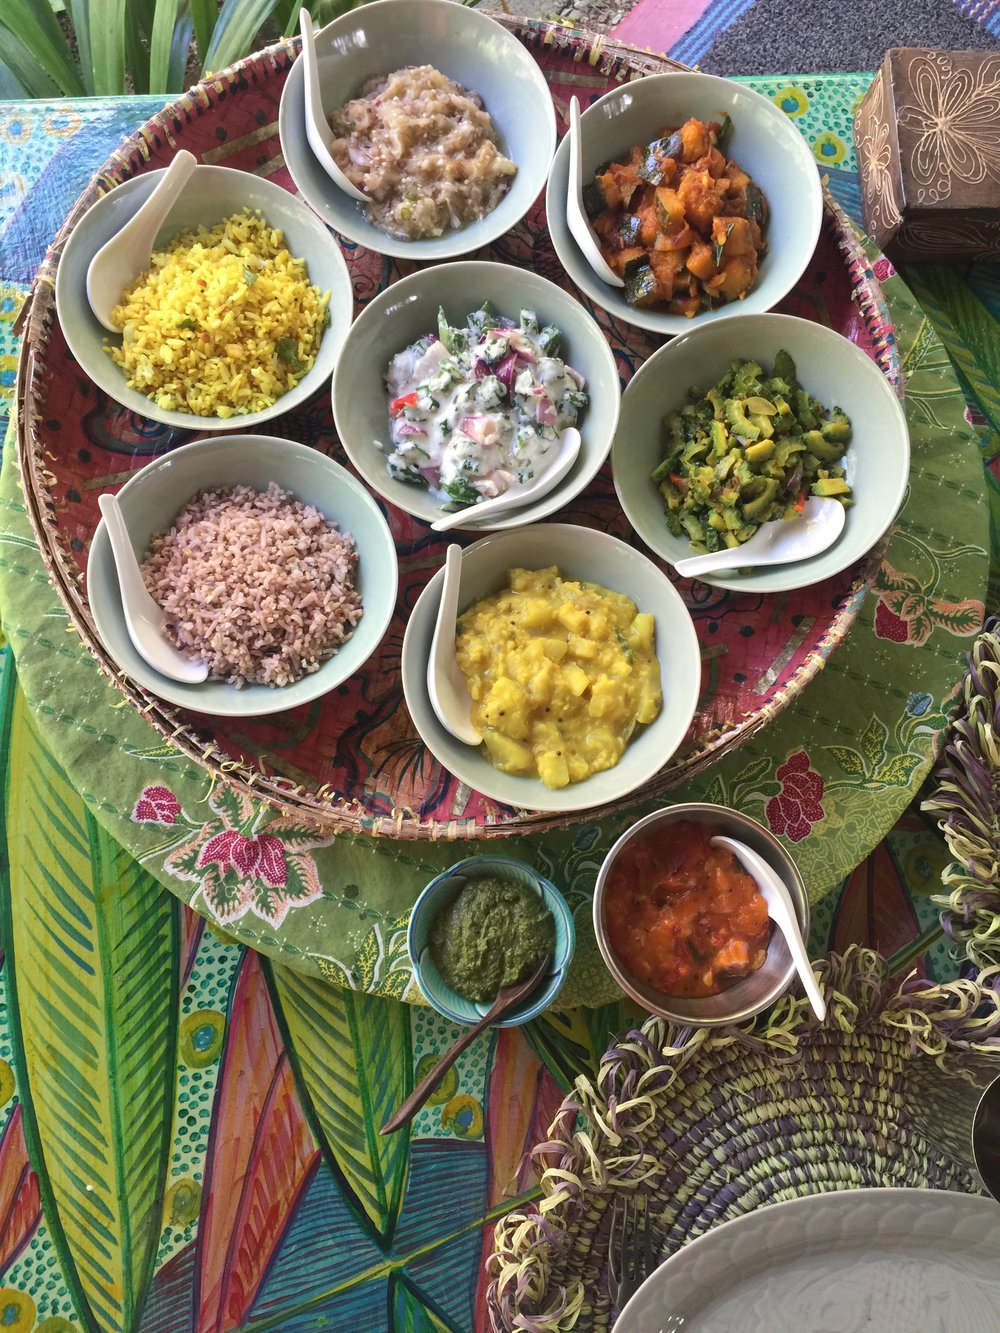 Ayurvedic dishes are an artful mix of flavors & natural colour